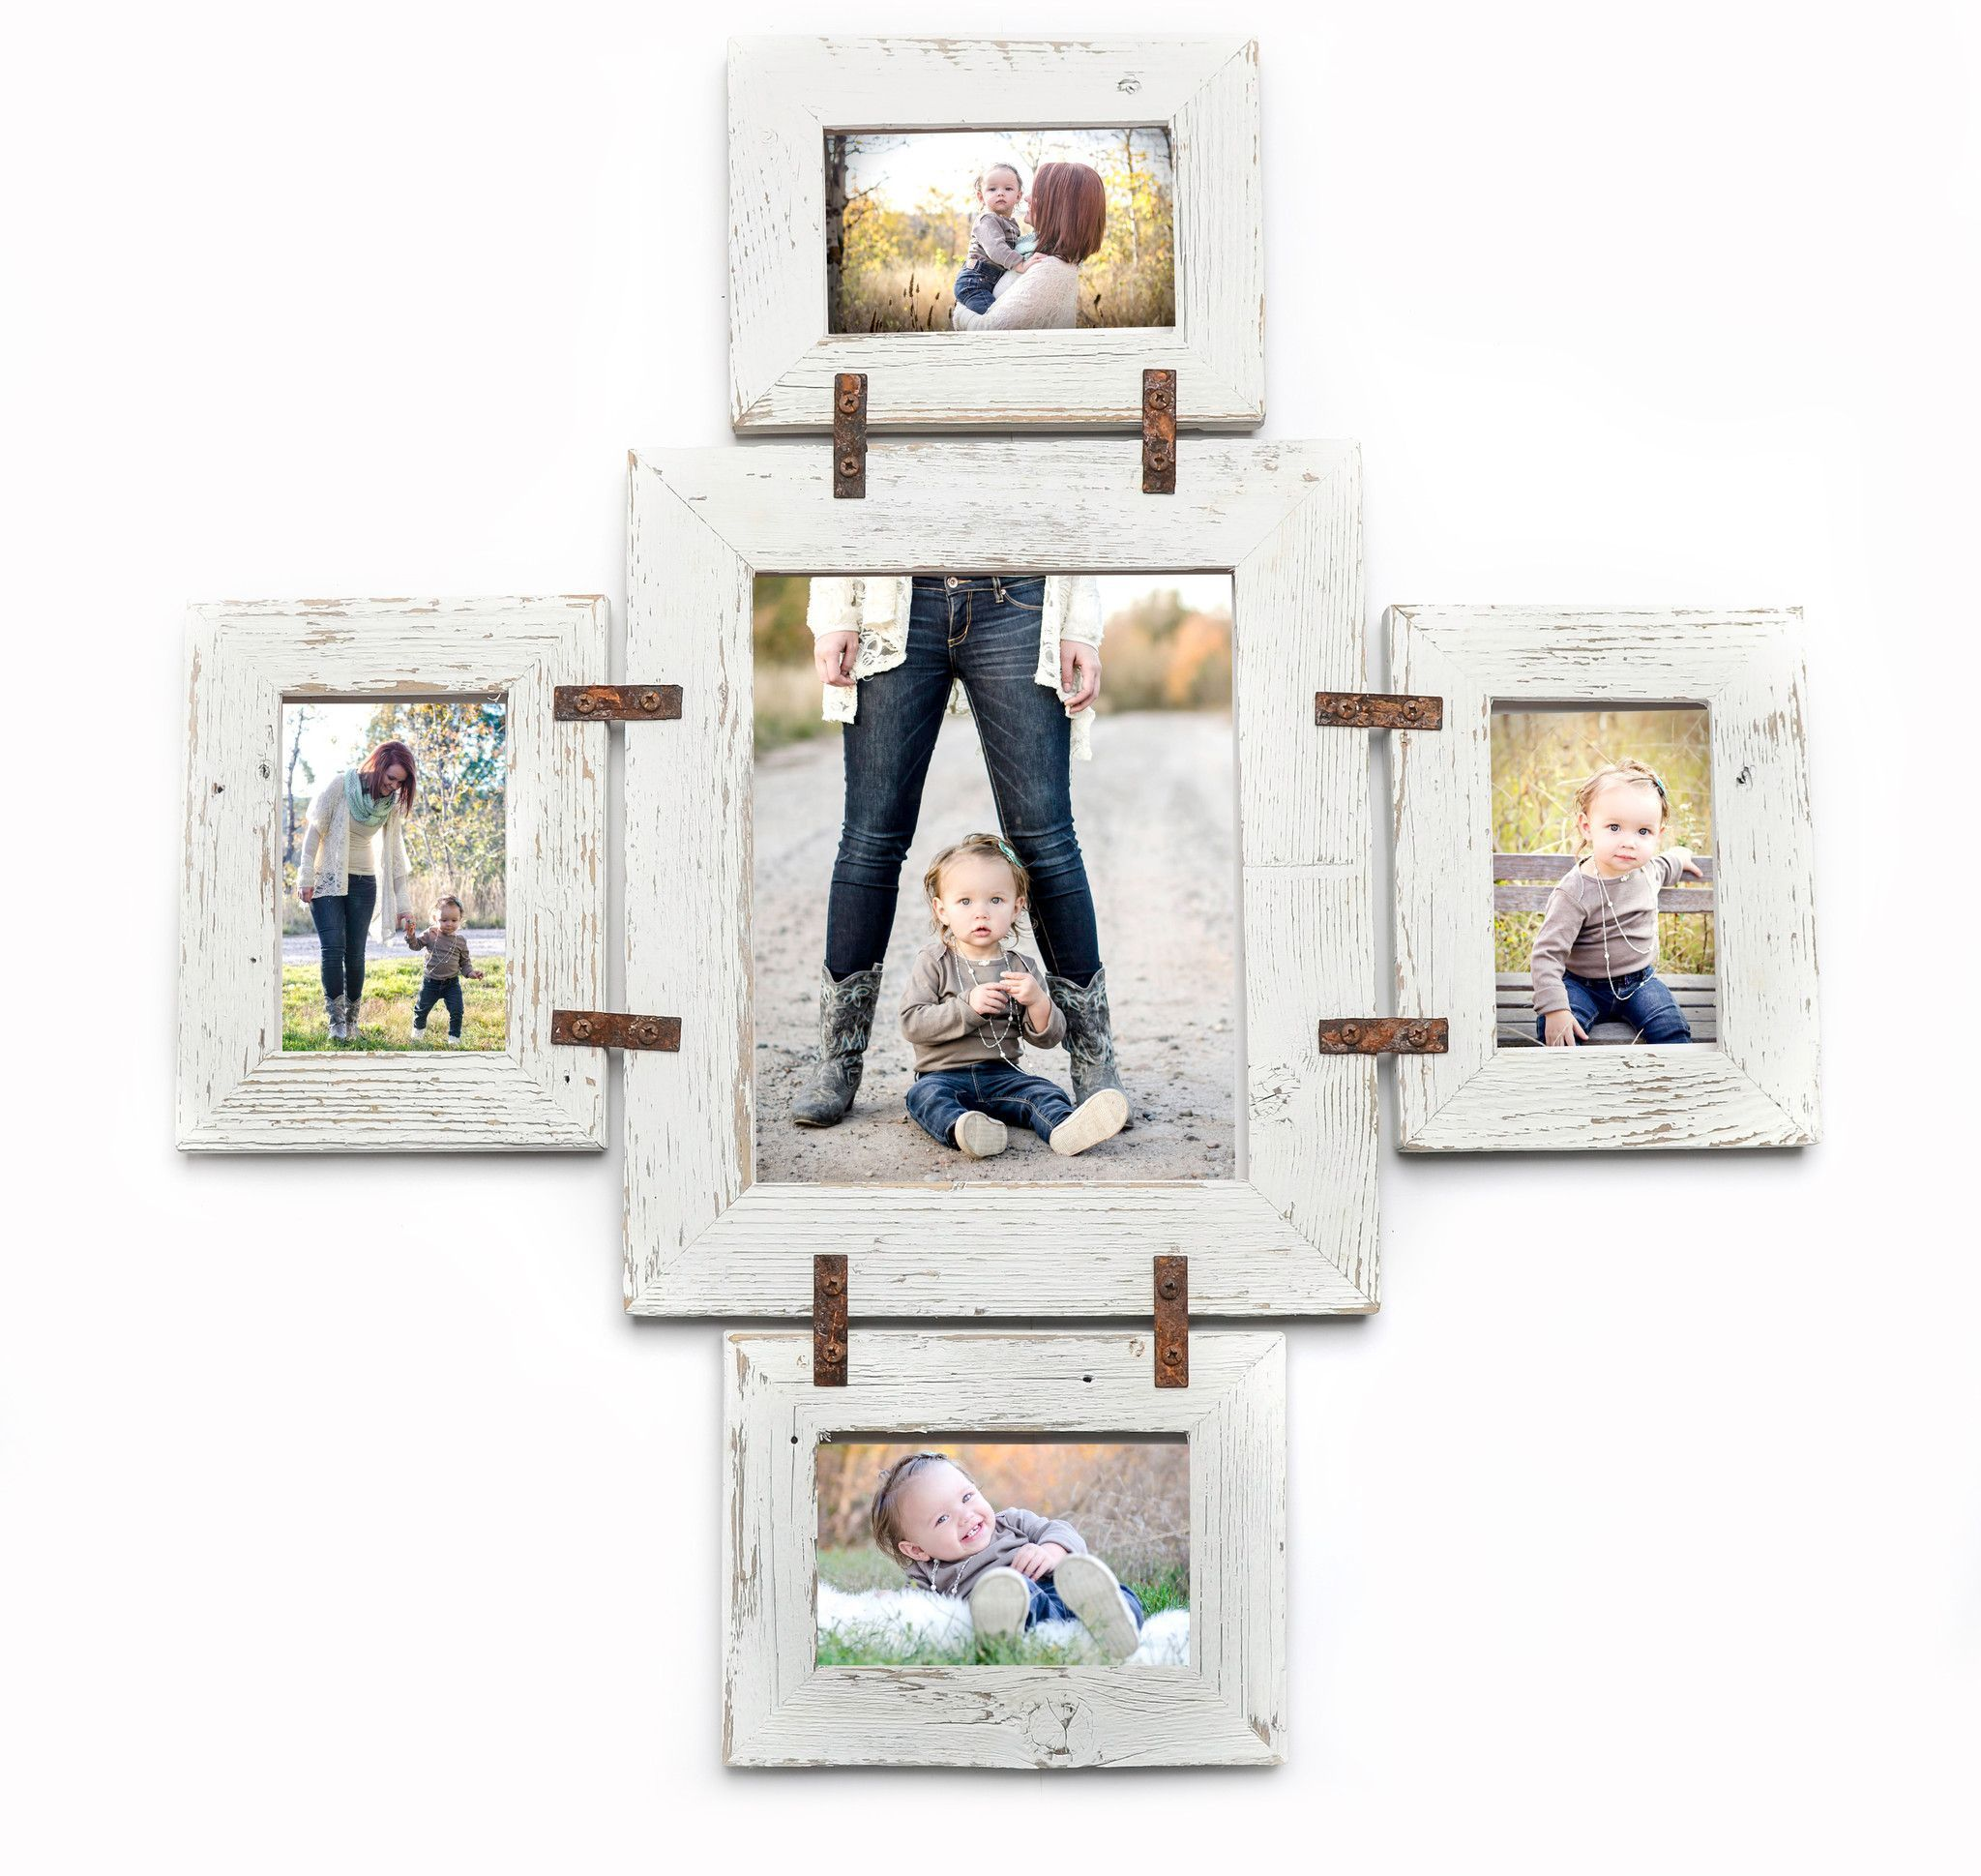 8x10 and 5x7 collage frame - Distressed Rustic Photo Collage Frame 1 8x10 And 4 4x6 Multi Opening Unique Frame